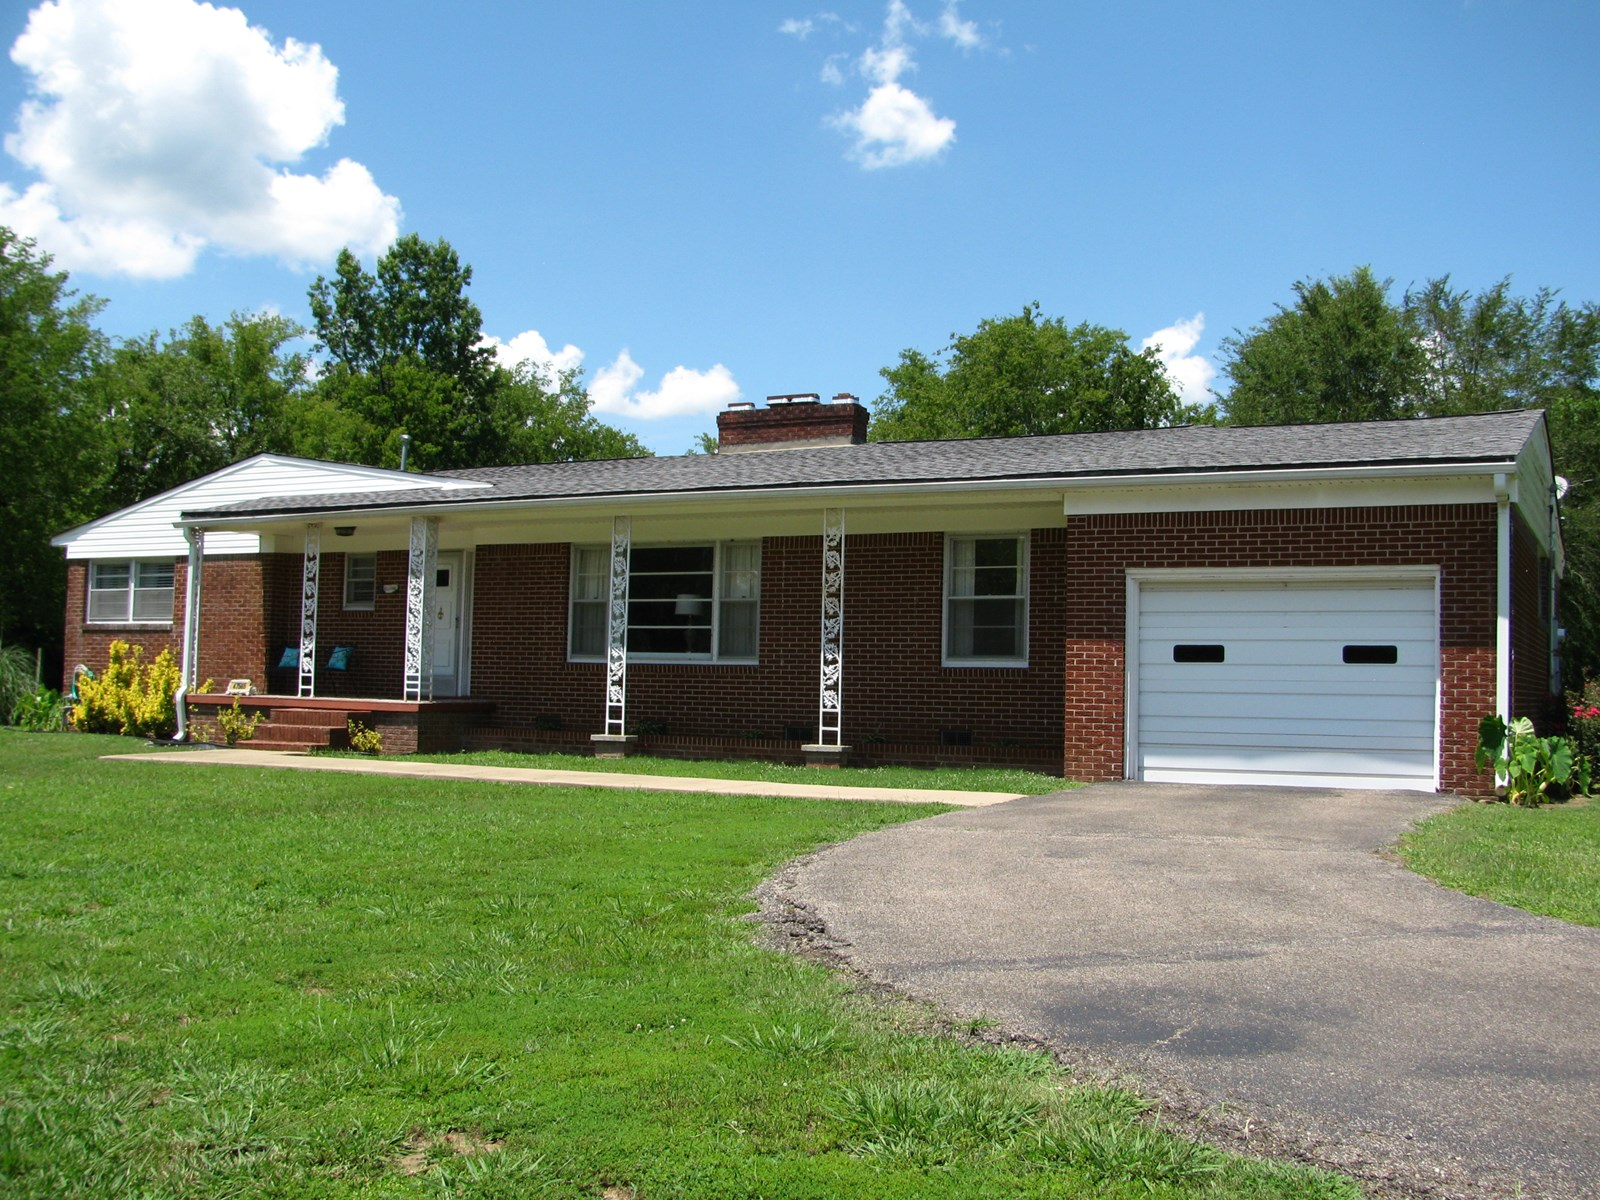 COUNTRY HOME IN TN FOR SALE, SHOP, SHEDS, HOBBY FARM